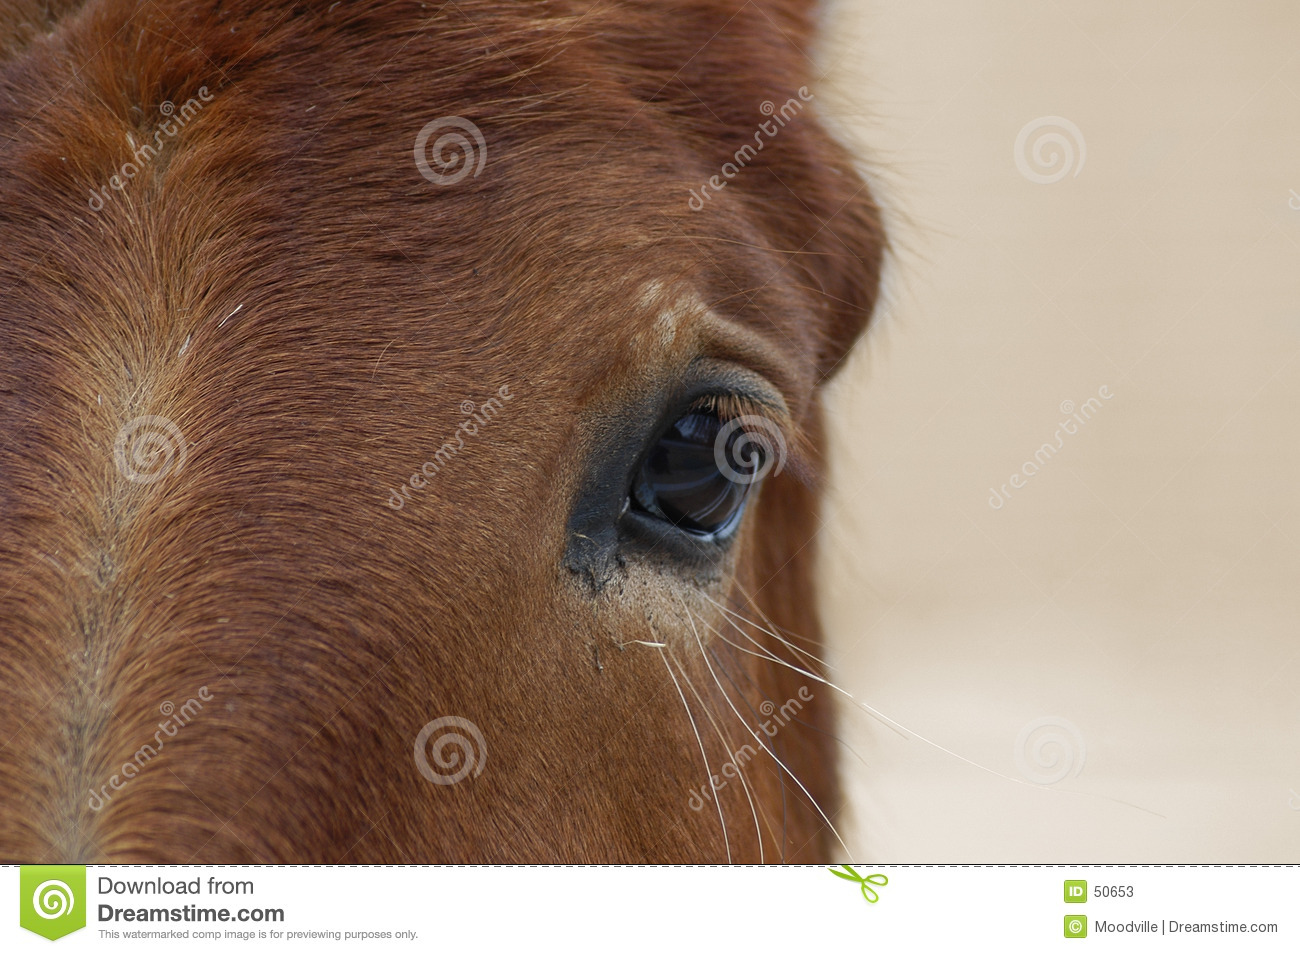 Download La tête de cheval image stock. Image du étalon, verticale - 50653